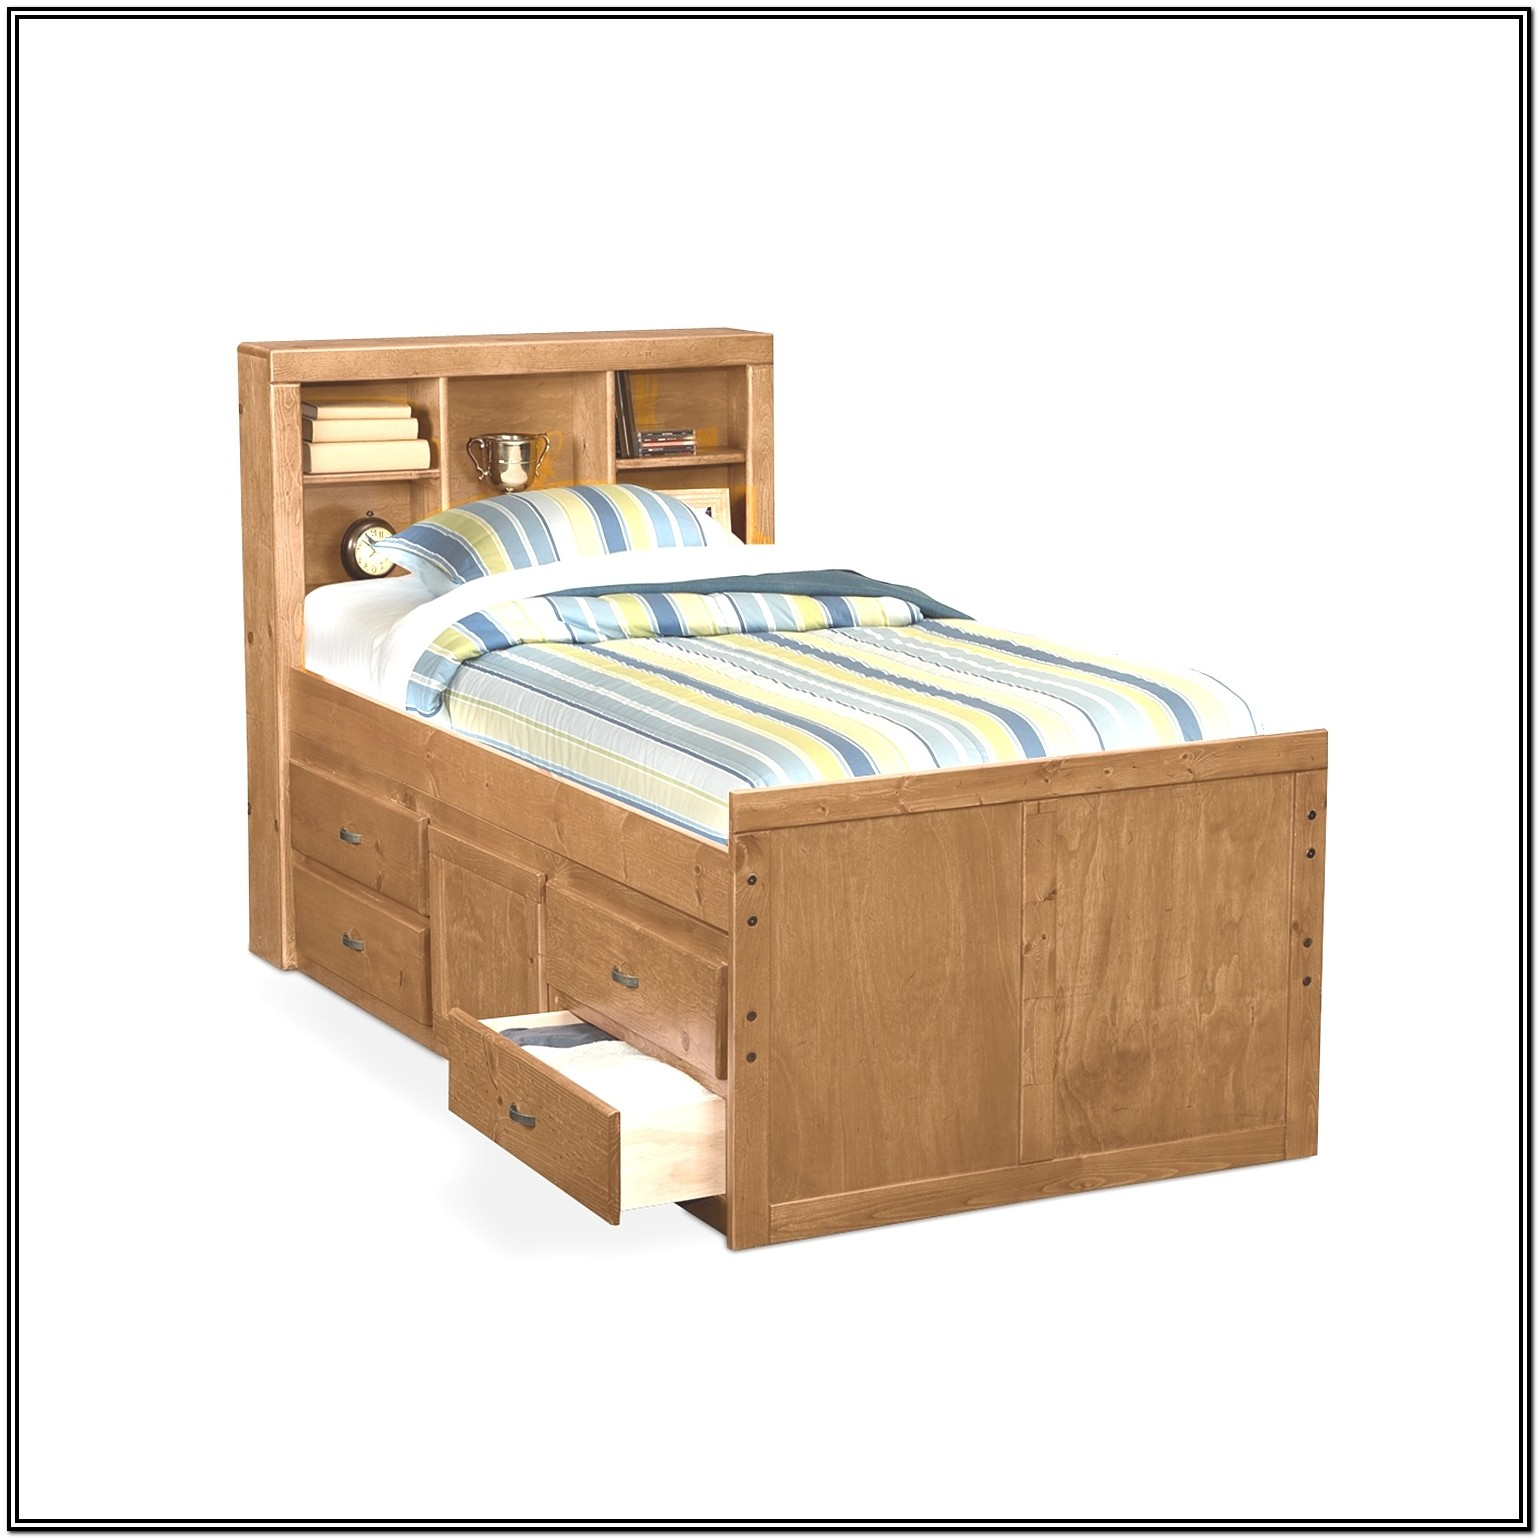 King Size Storage Bed Building Plans